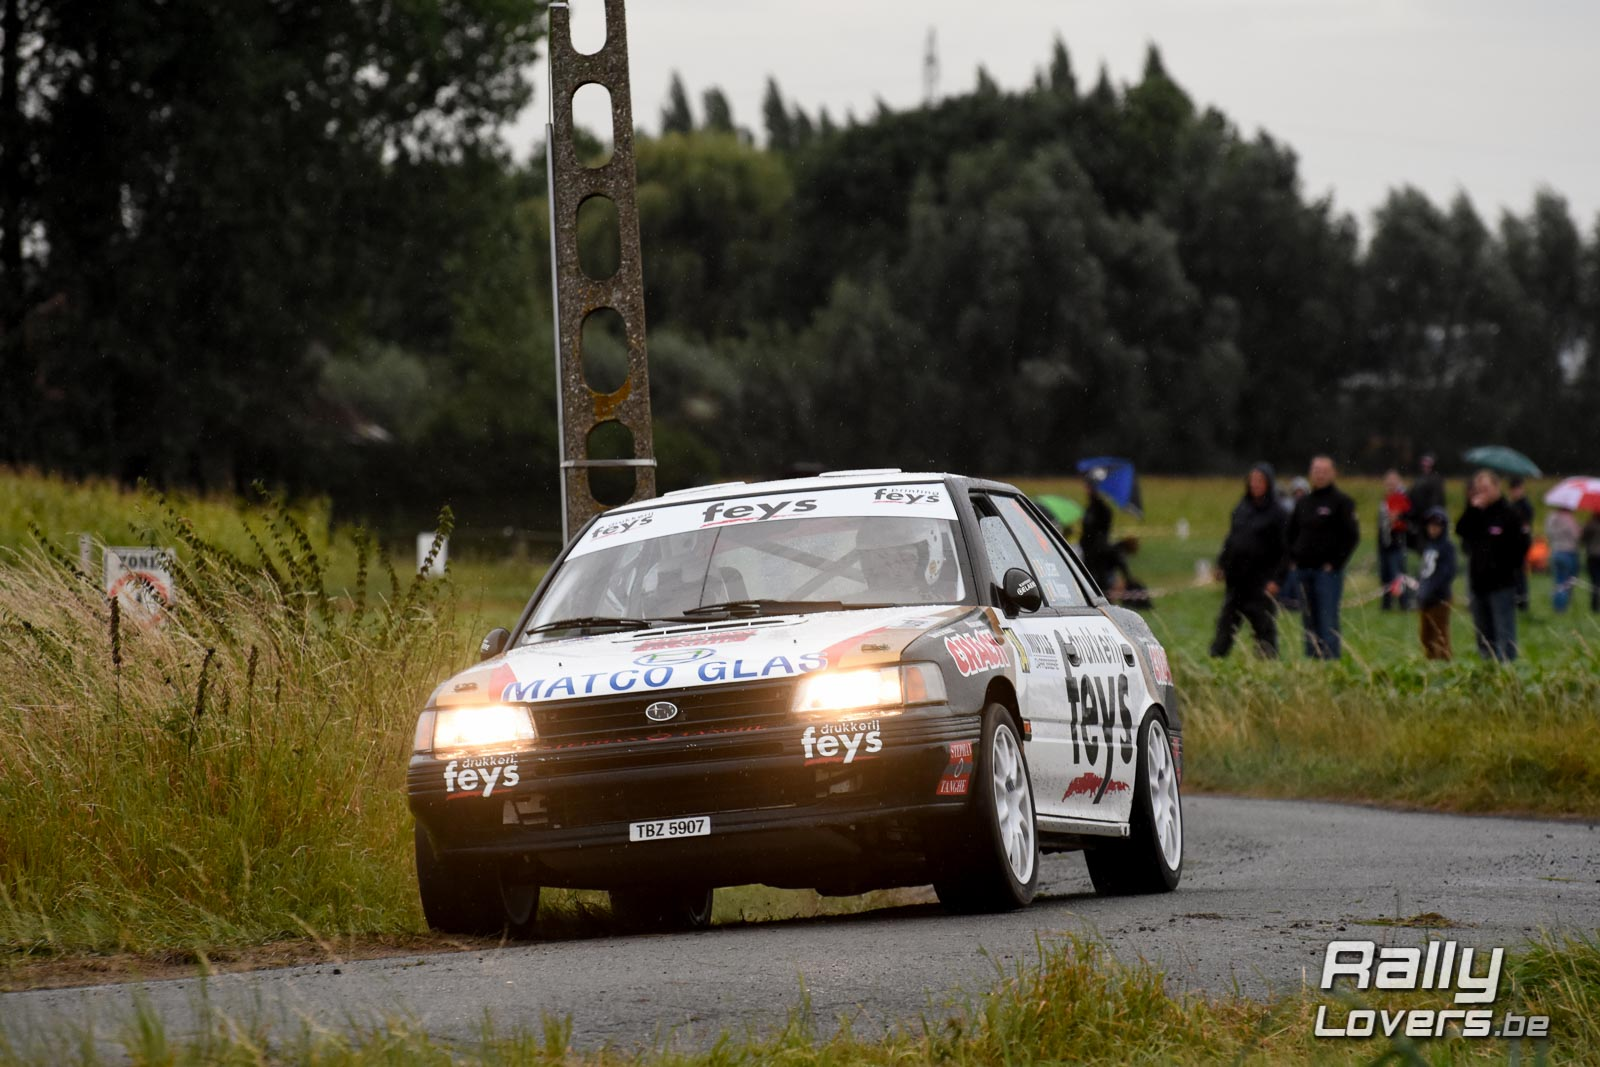 TAC Rally - Historic BRC - Paul Lietaer favoriet, maar de concurrentie is sterk